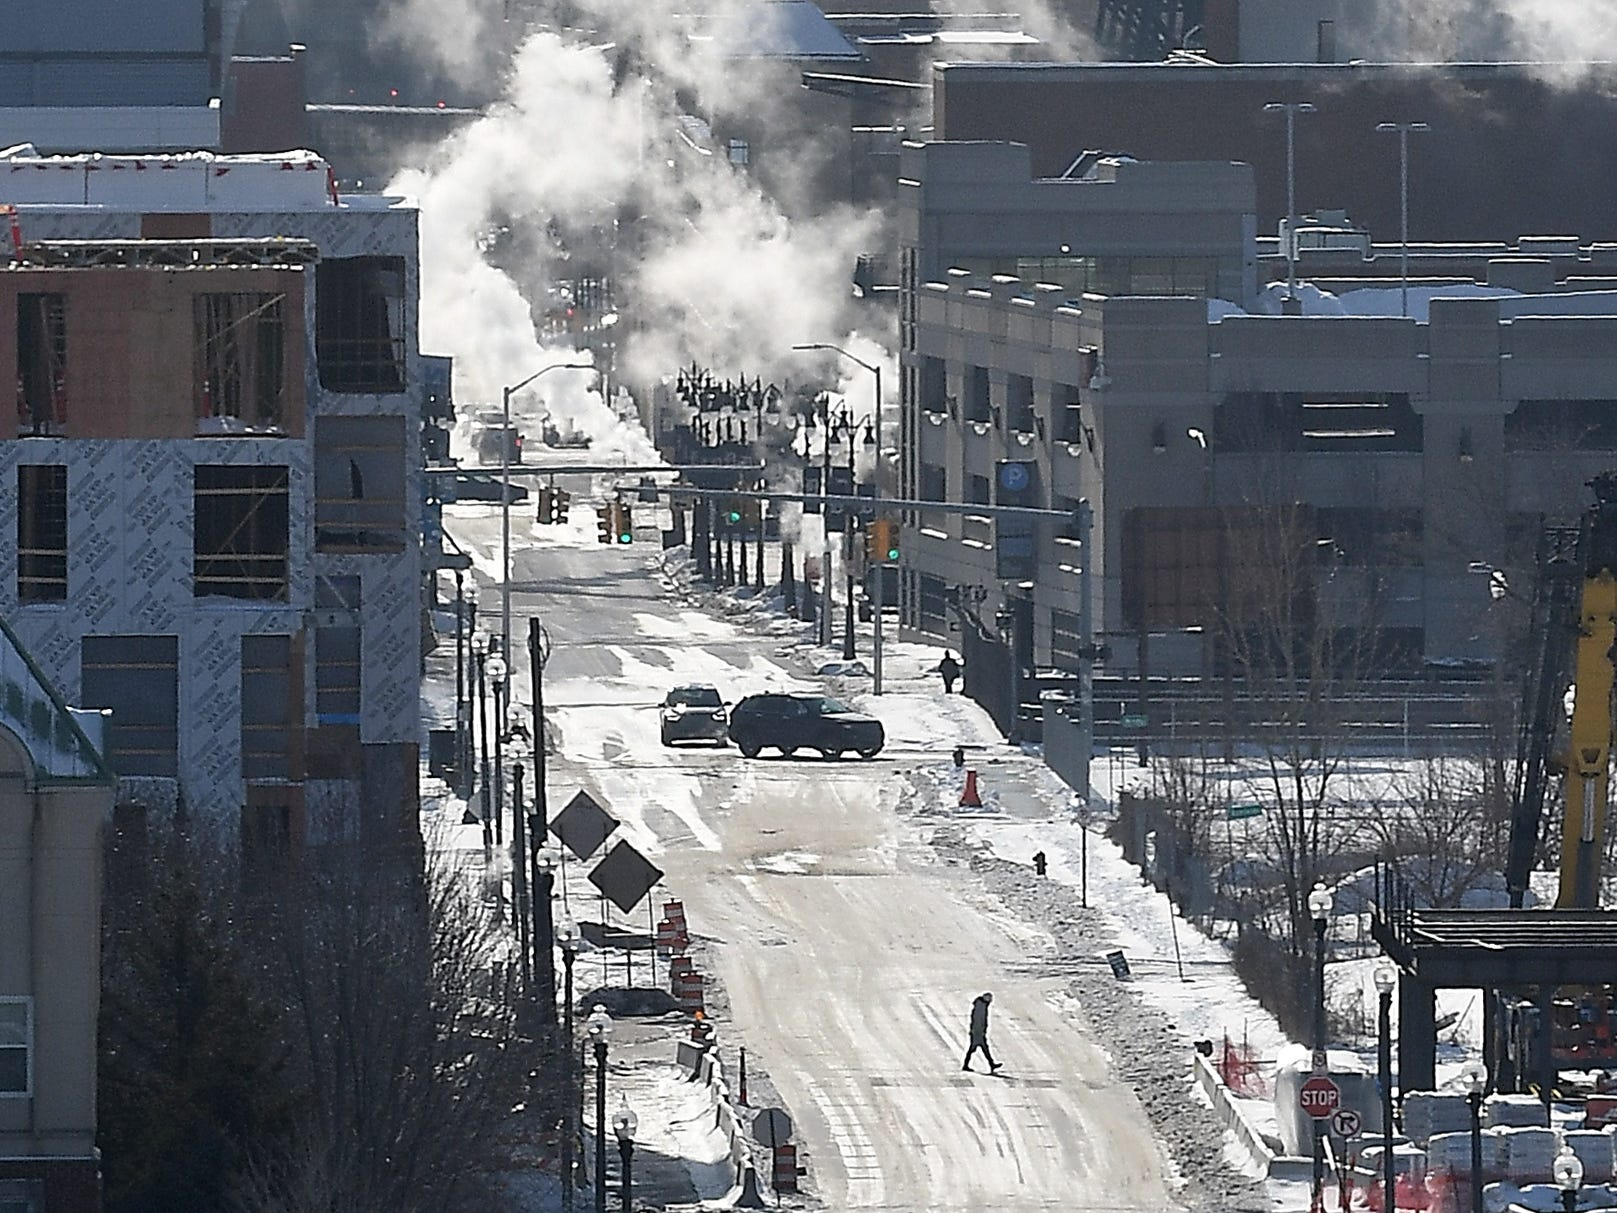 Frozen Detroit, at Mack looking down Brush Street, which was experiencing record cold weather on Wednesday, Jan. 30, 2019.